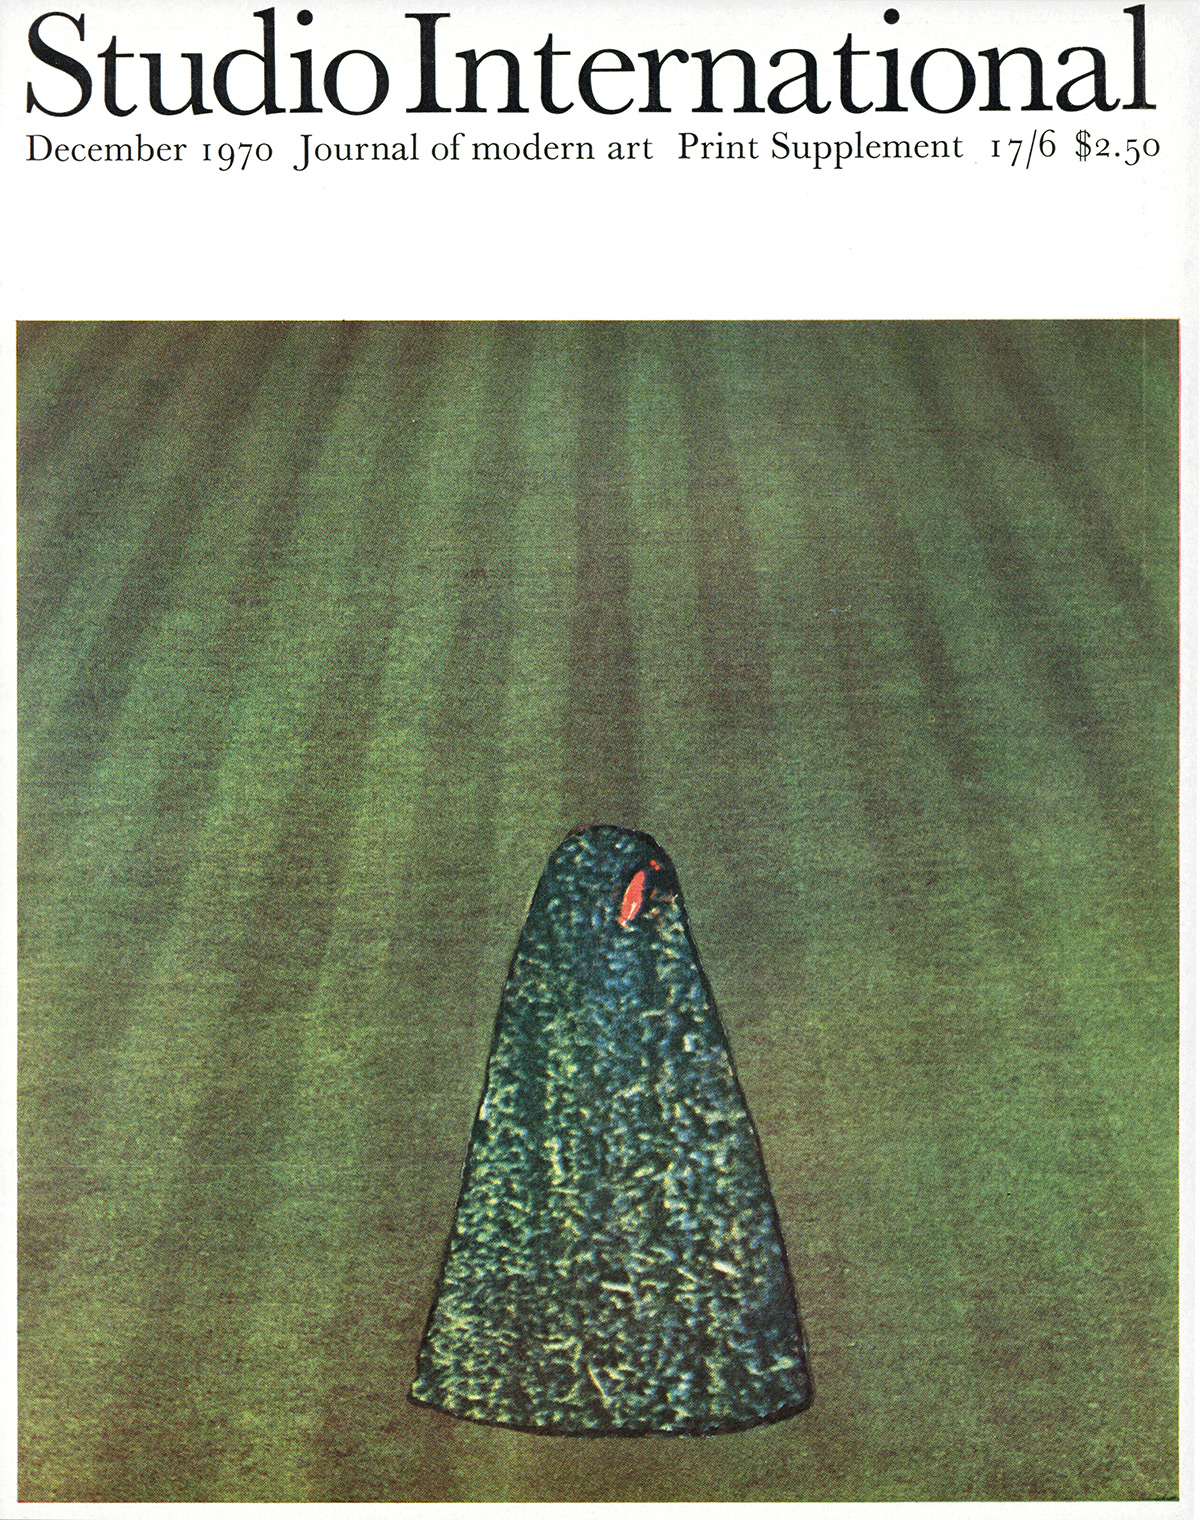 Studio International, Vol 180, No 928, December 1970, pages 229-230.